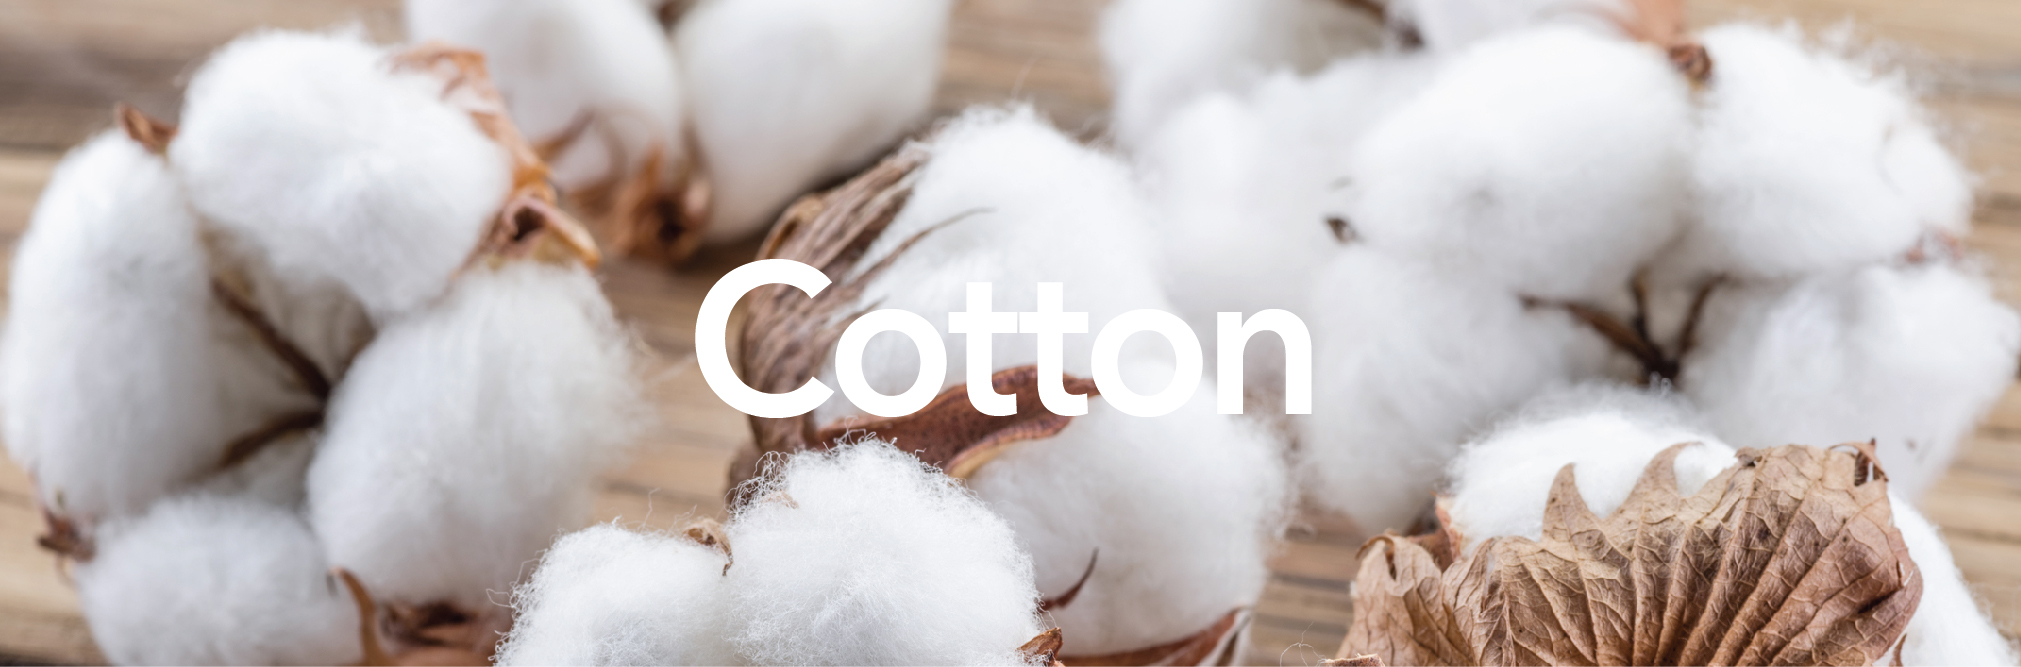 Cotton-main-01.jpg